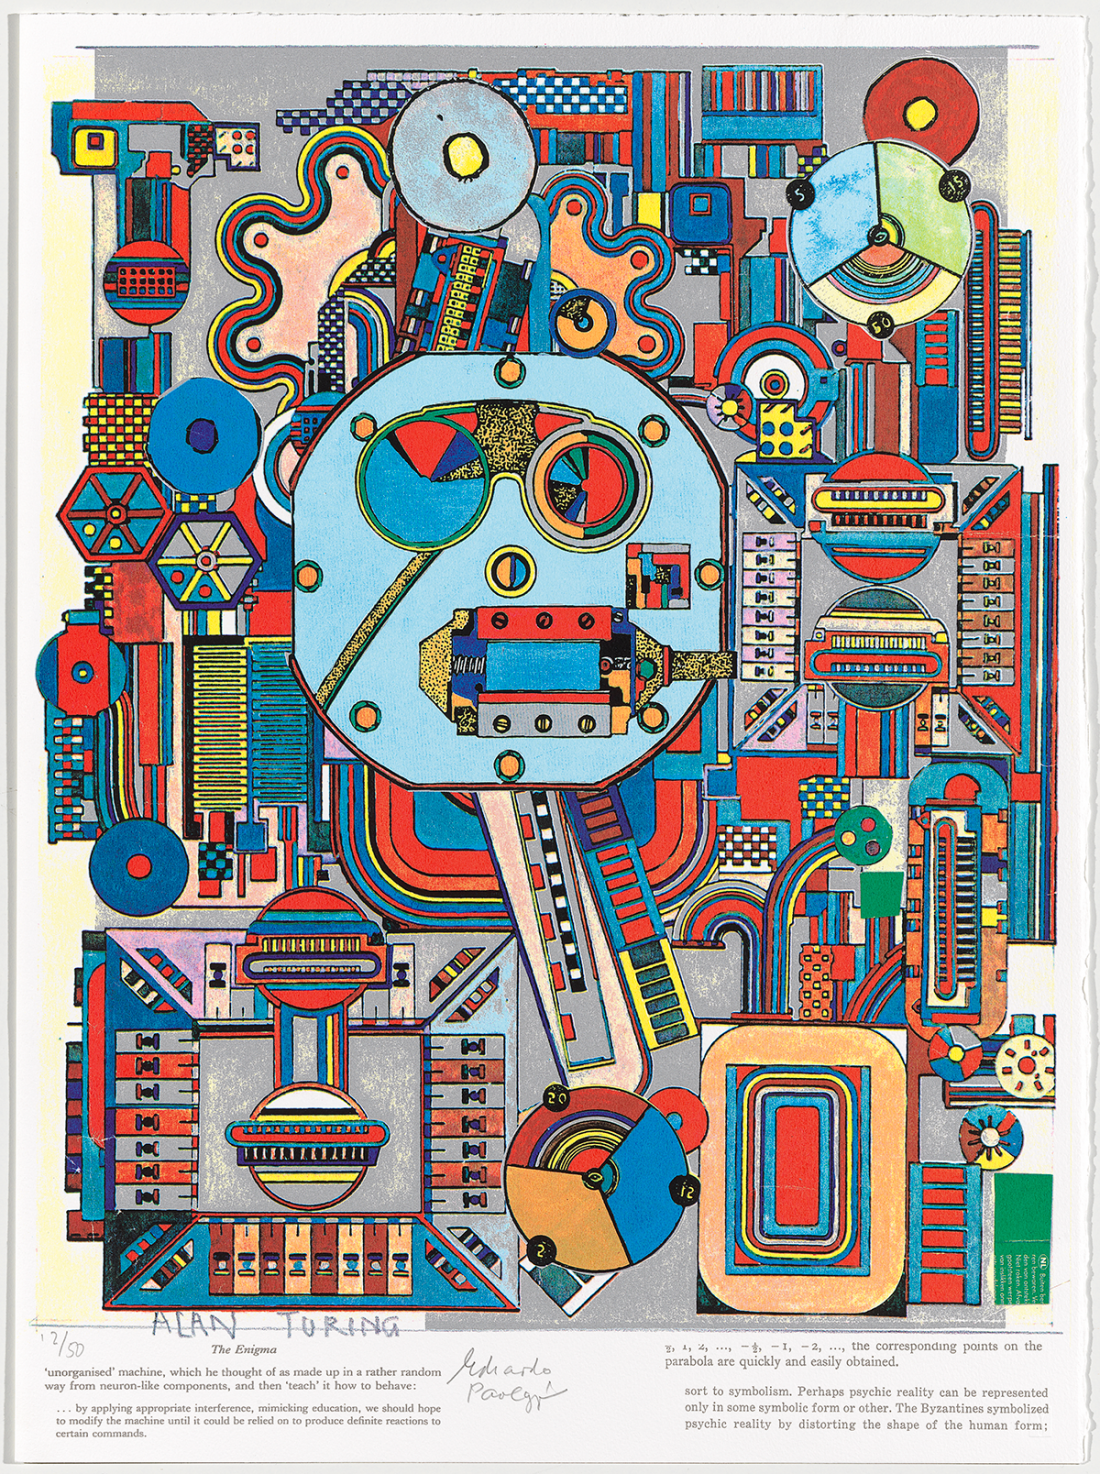 Eduardo PaolozziEnigma, Plate 3 from The Alan Turing Suite, 2003 Colour screenprint and photo-stencil with text, 72.5 × 54 cm. © Trustees of the Paolozzi Foundation, Licensed by DACS 2018. Collection: Kip Gresham.